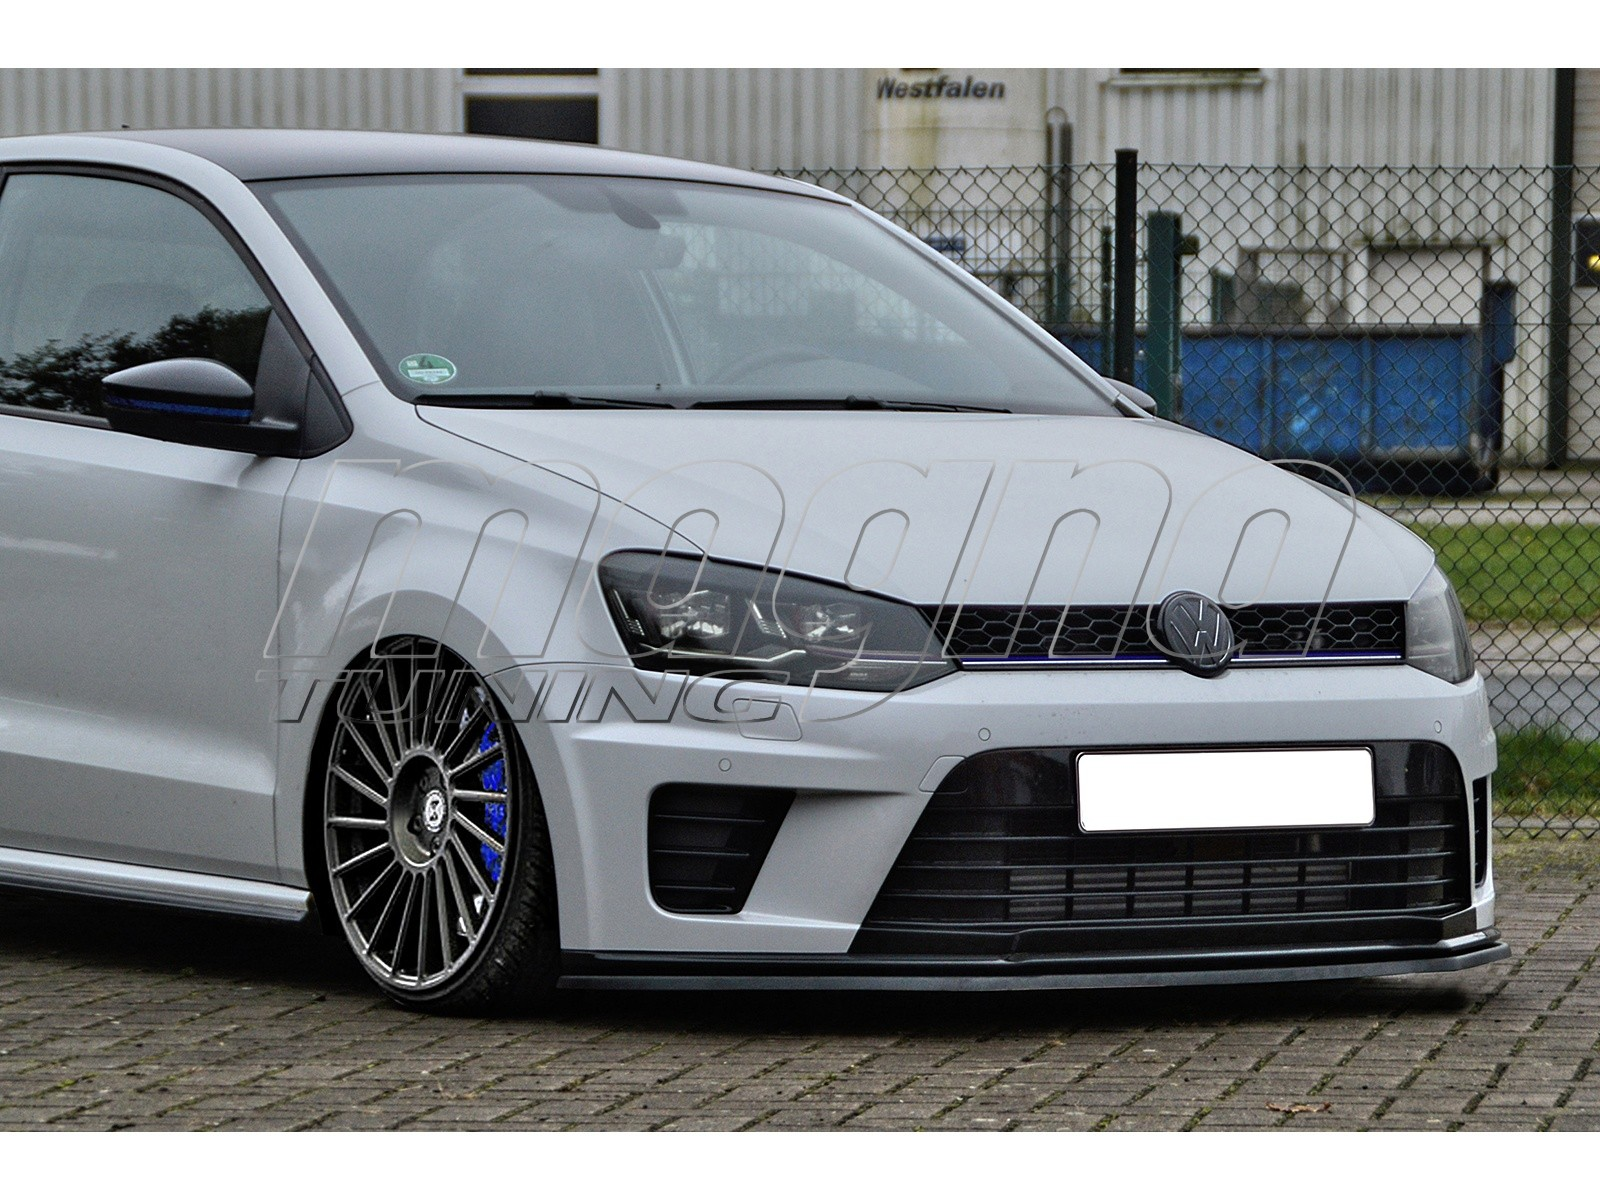 vw polo 6r wrc invido front bumper extension. Black Bedroom Furniture Sets. Home Design Ideas